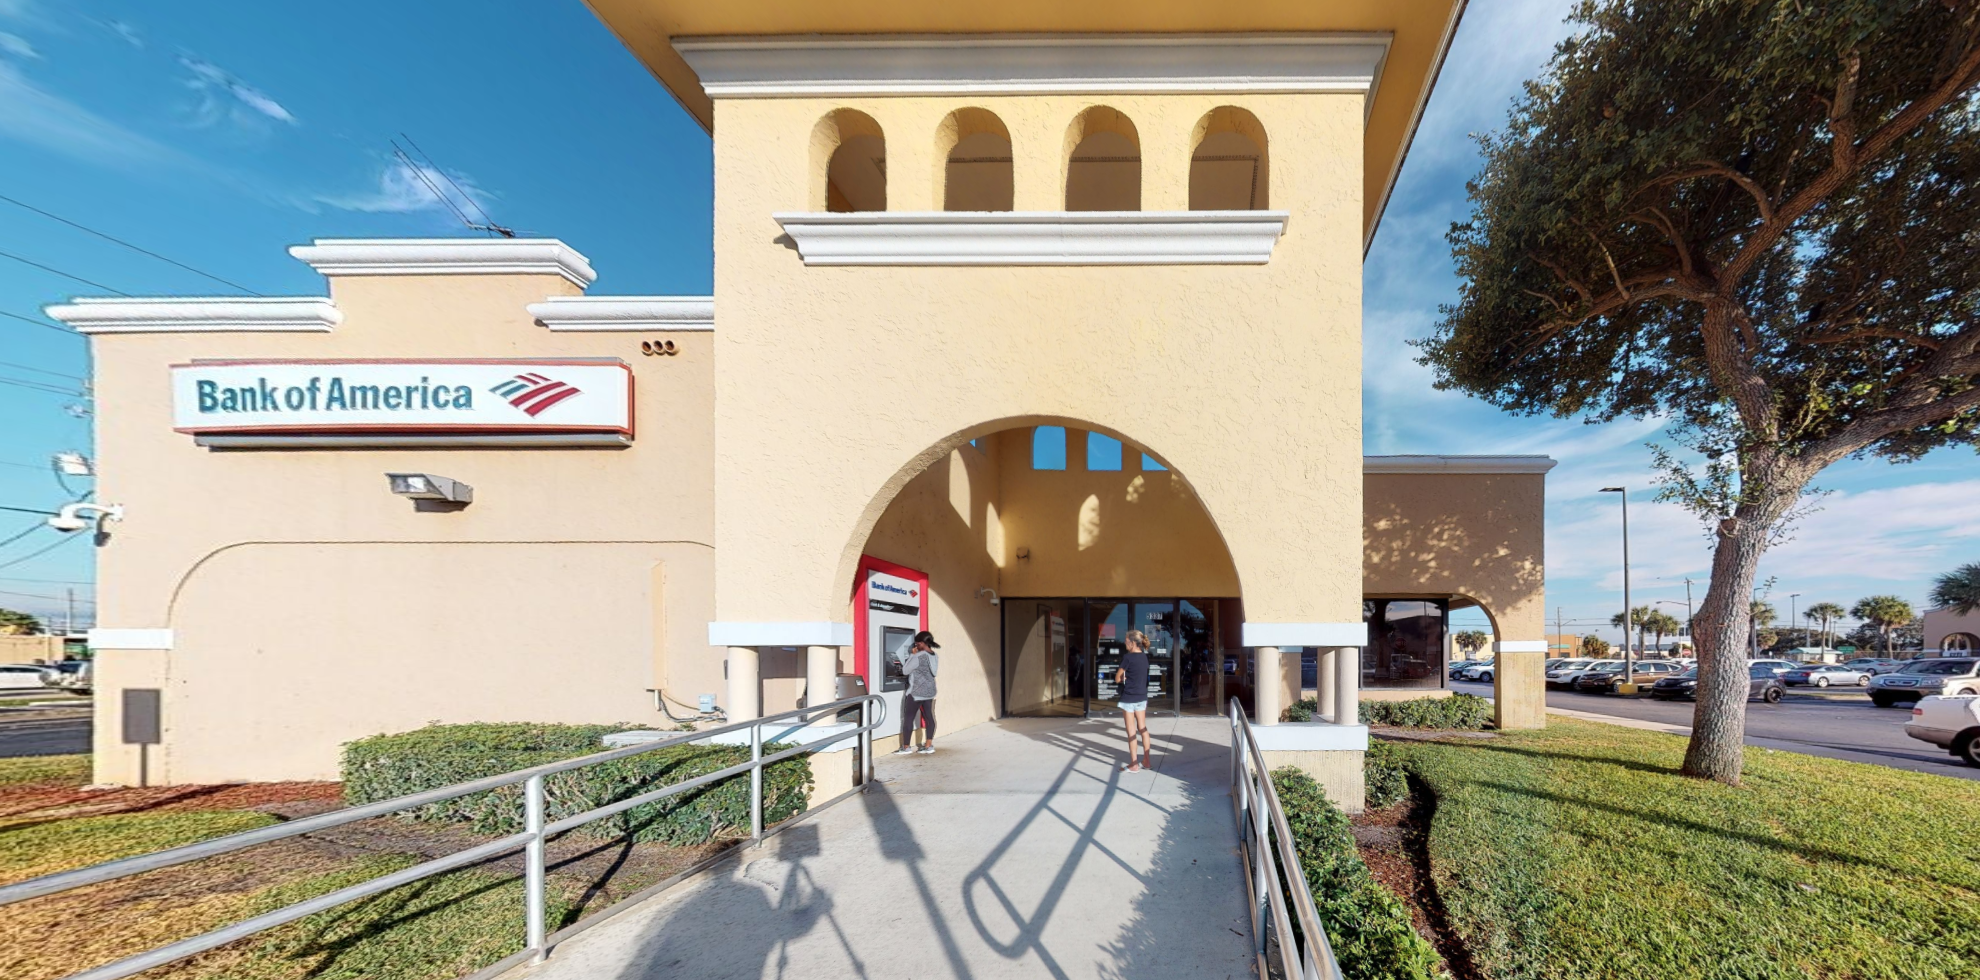 Bank of America financial center with drive-thru ATM | 5337 N Military Trl, West Palm Beach, FL 33407